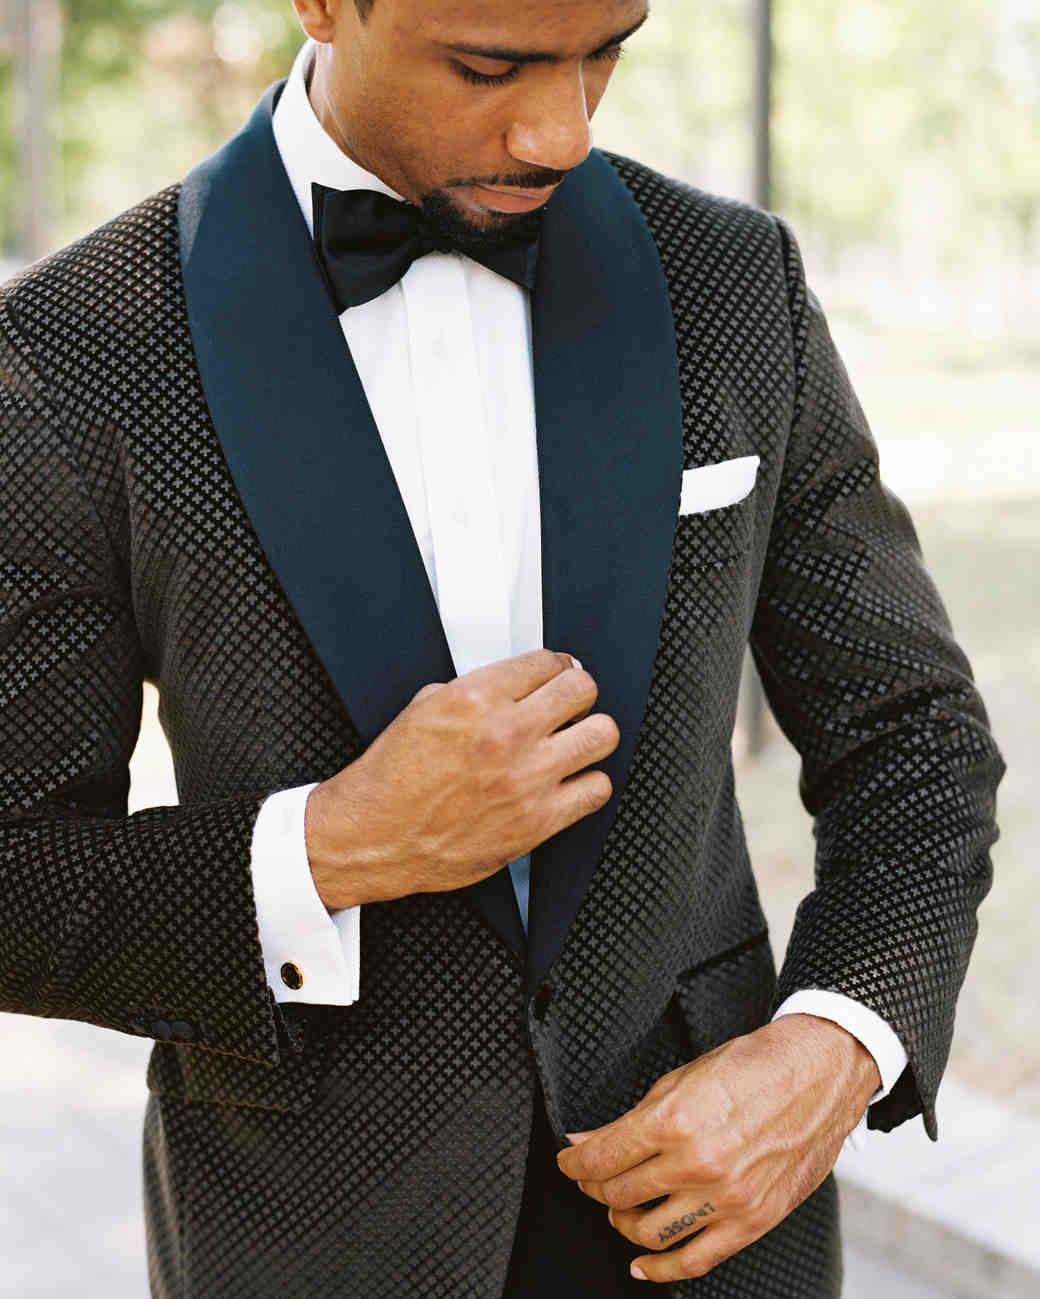 Wedding Suits: Wedding Attire Etiquette For Brides And Grooms